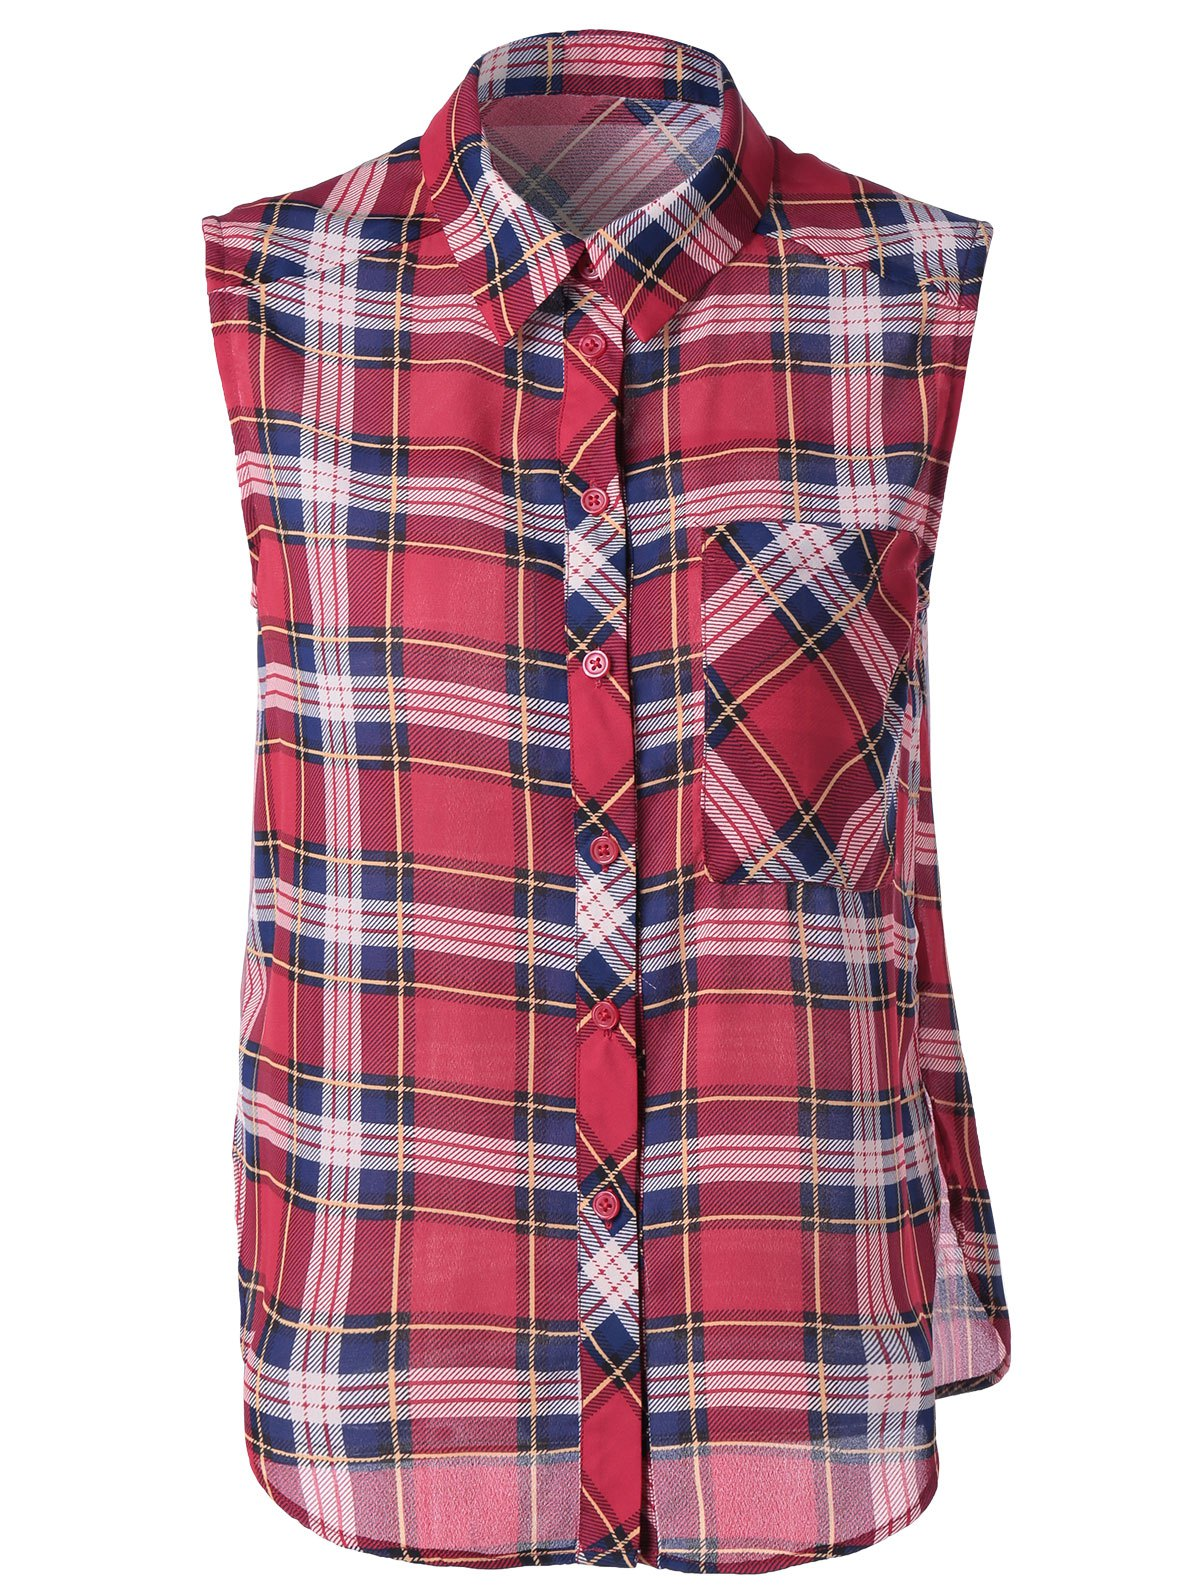 Preppy Women's Slimming Shirt Collar Checkered Print Blouse - RED XL